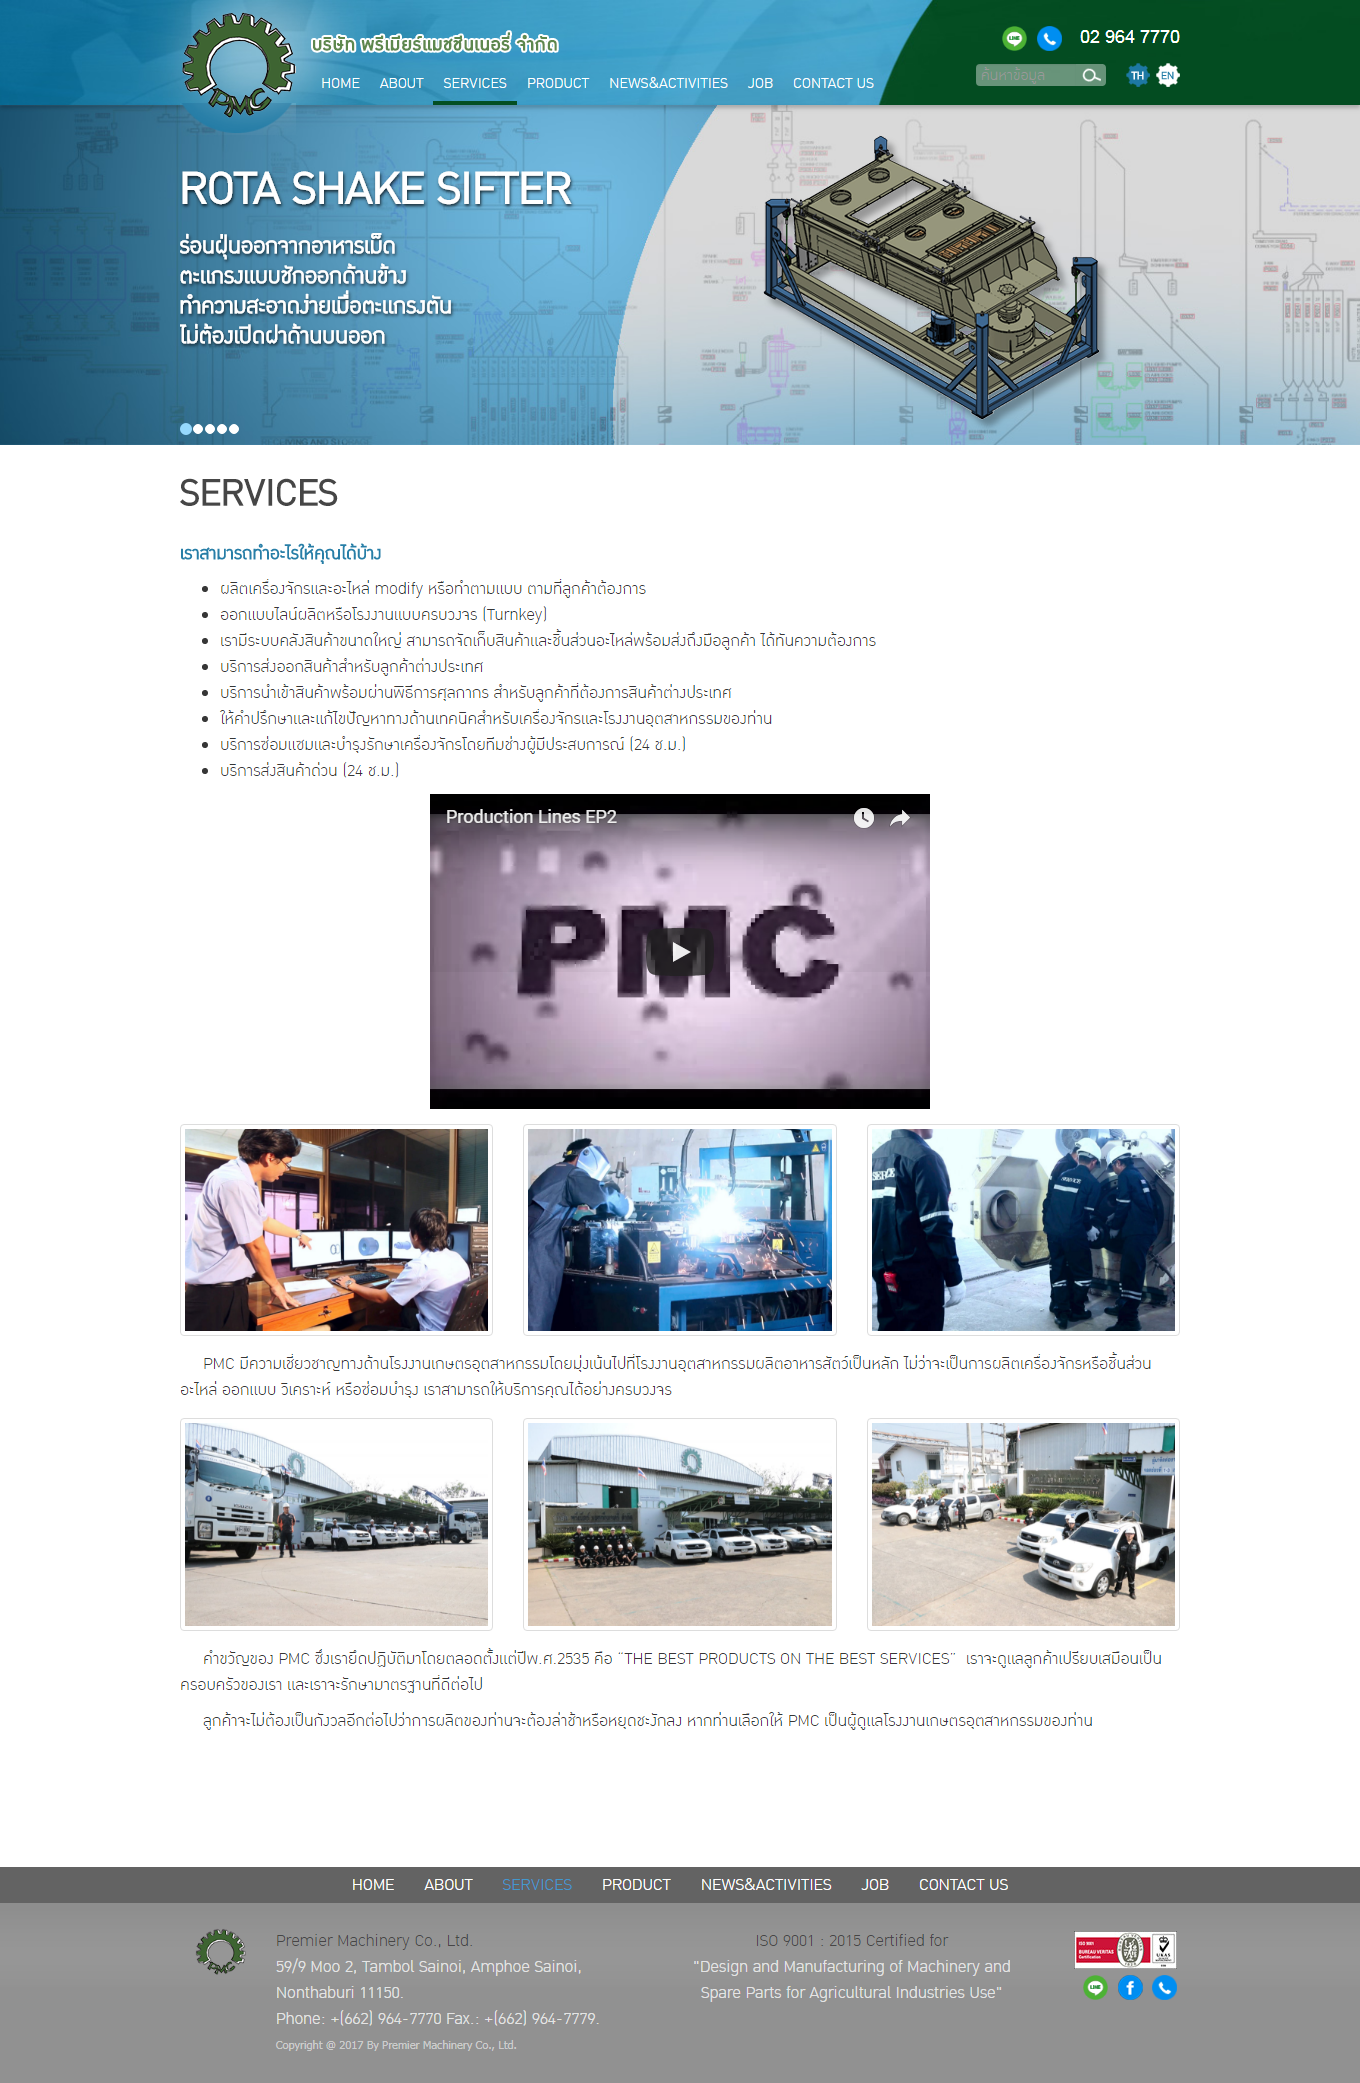 pmc-machine.com